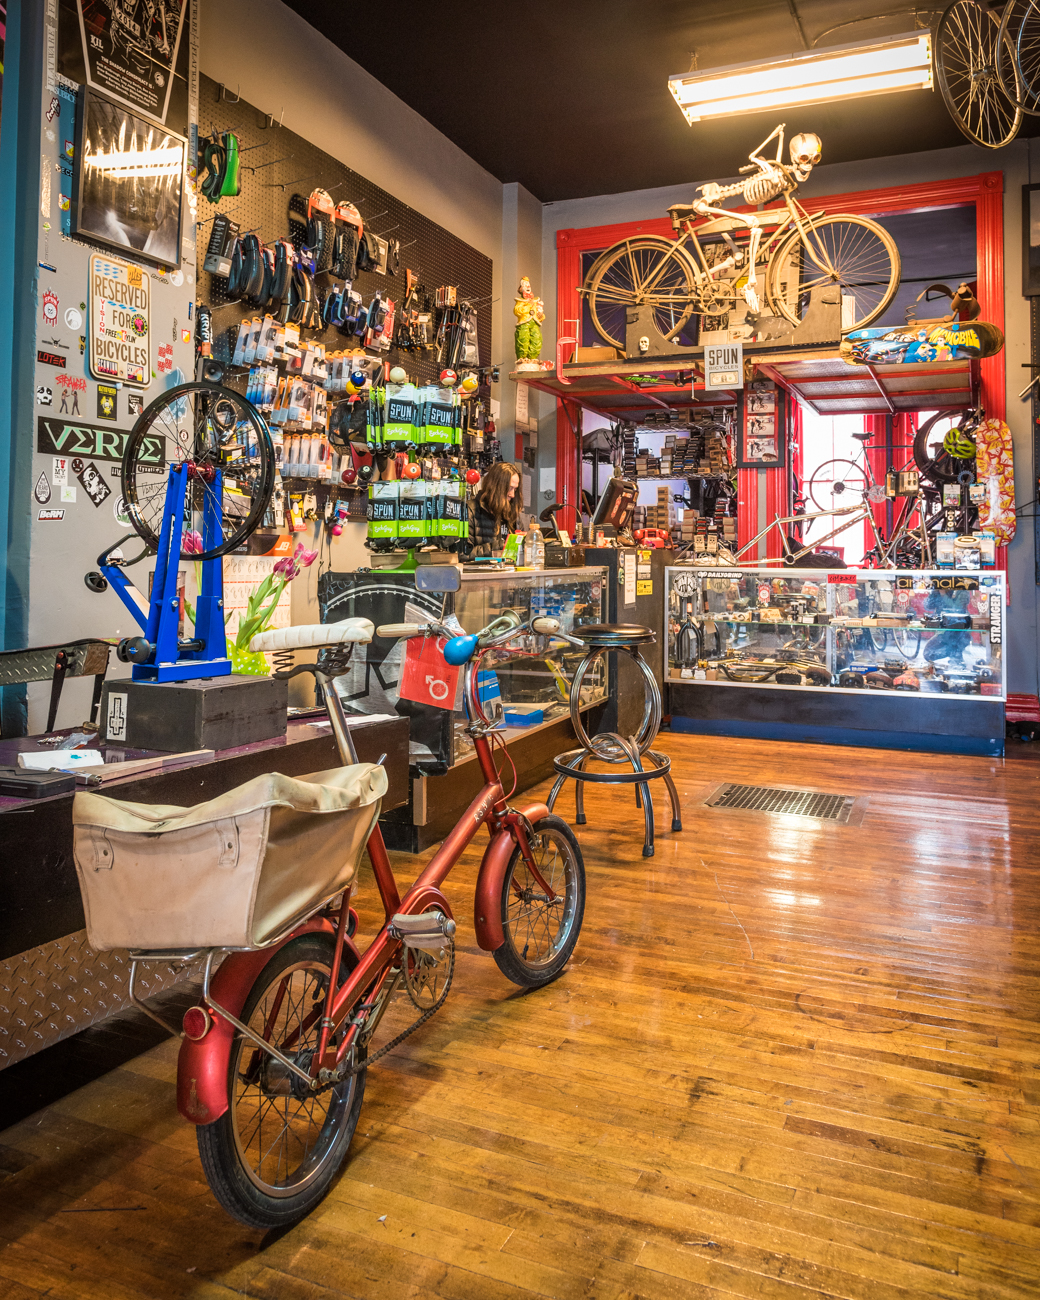 SPUN Bicycles is more than a place to buy bikes, it's a full on bicycle shop. Repairs, custom builds, accessories, and friends within the biking community are all part of the SPUN experience. ADDRESS: 4122 A Hamilton Ave., Cincinnati, OH 45223 / Image: Phil Armstrong, Cincinnati Refined // Published: 3.19.17